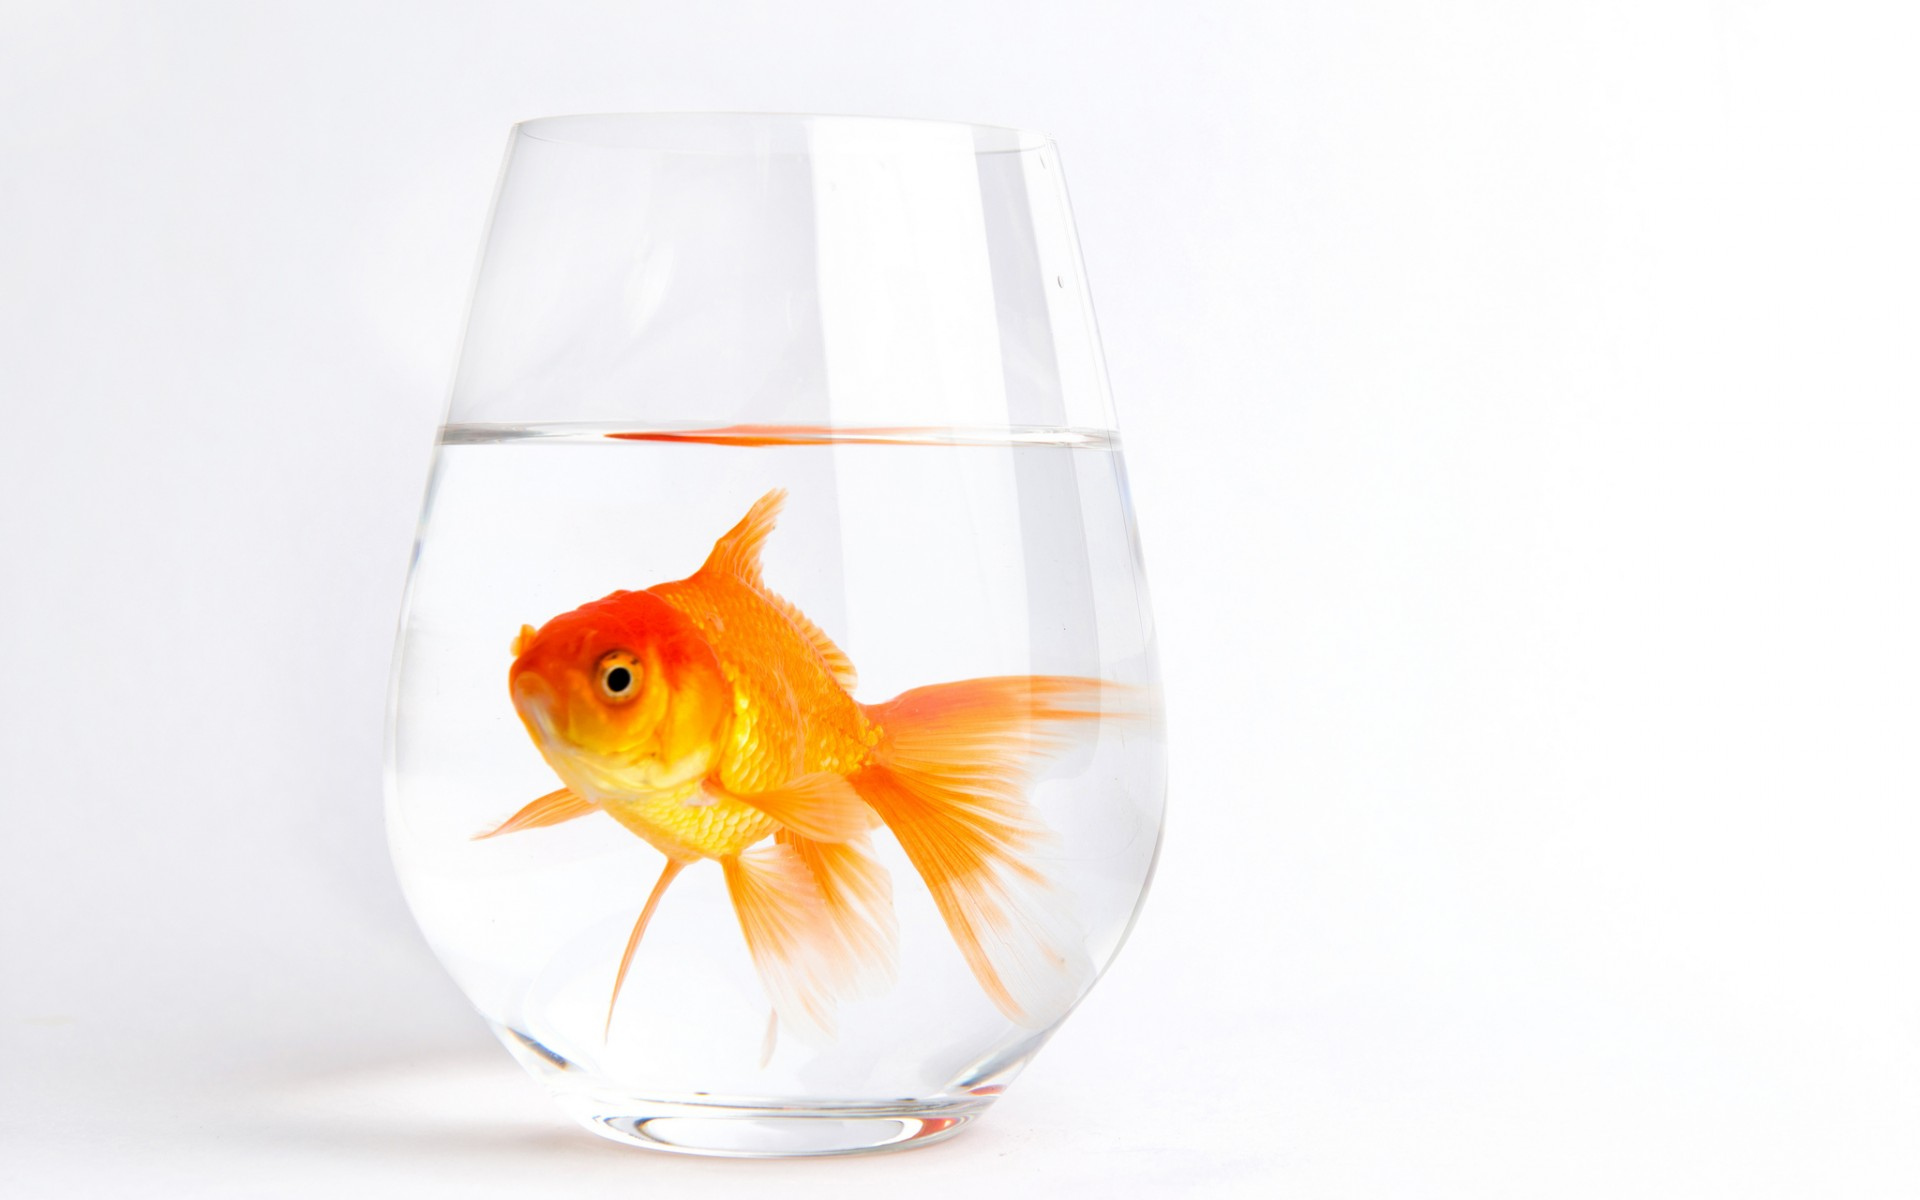 Gold Fish In A Glass With Water